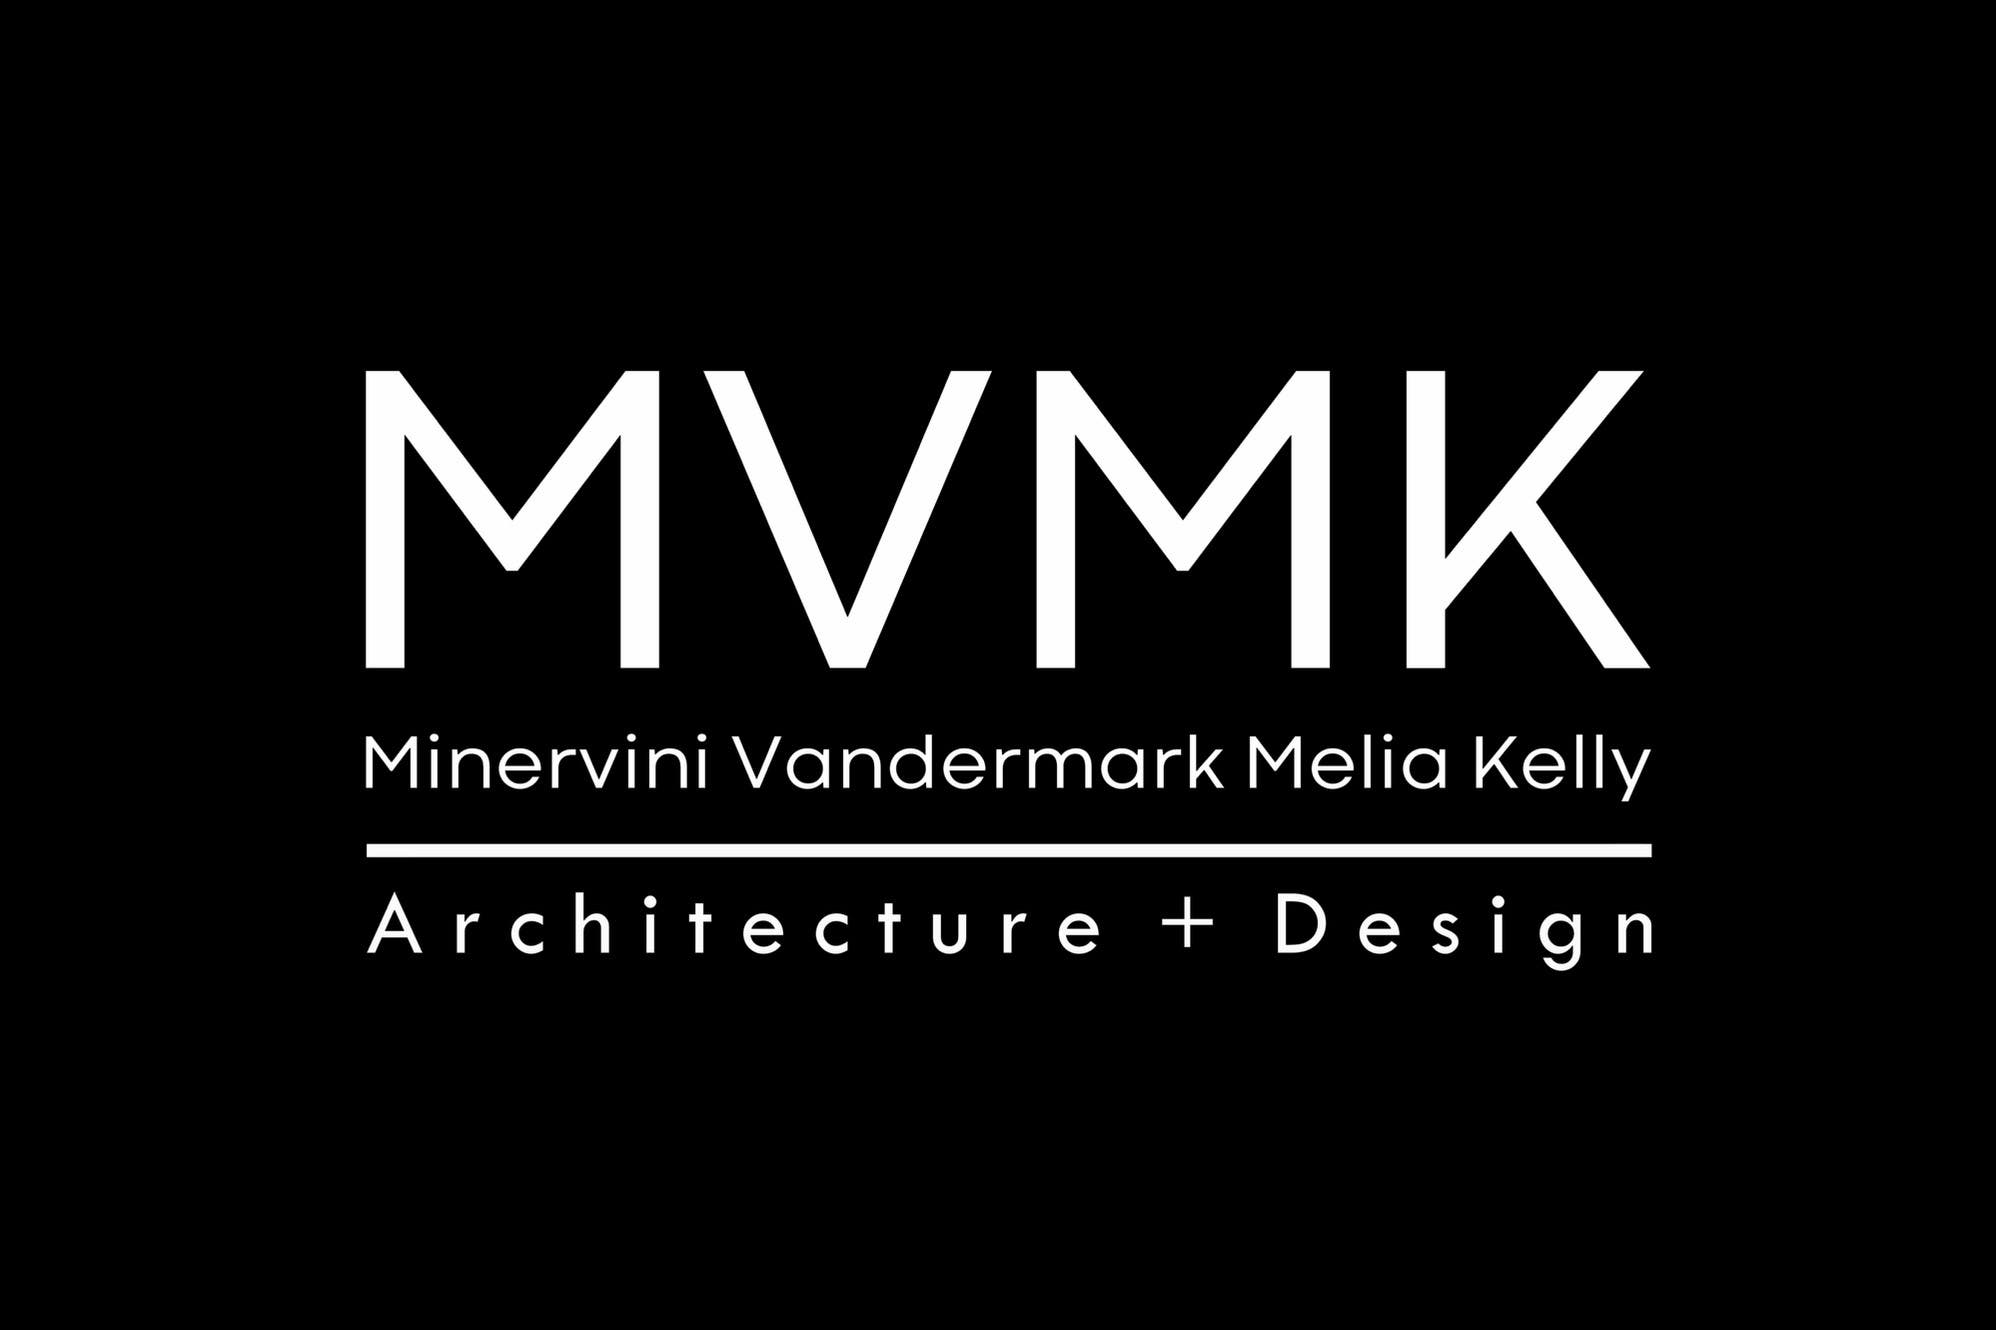 mvmk architecture and design